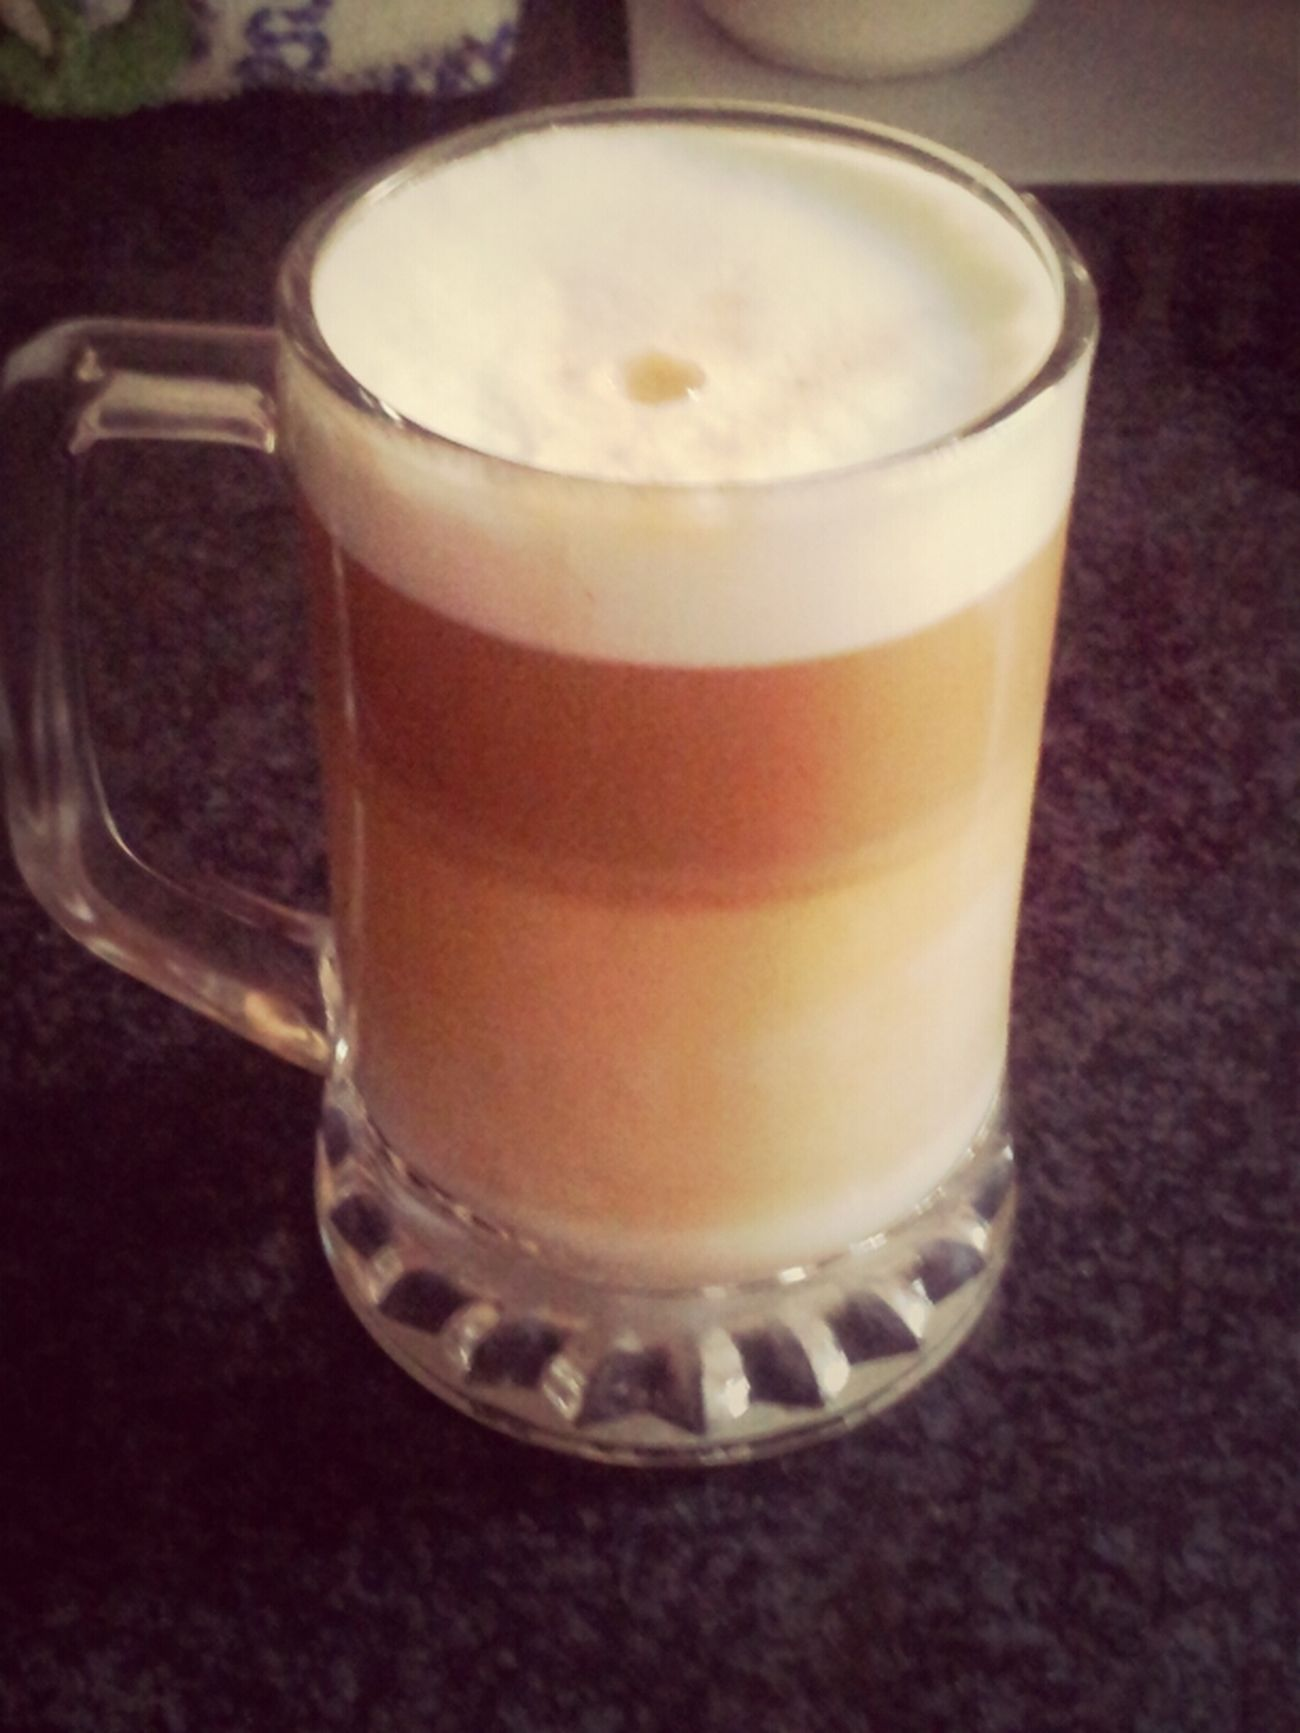 Cafe Late Machiato